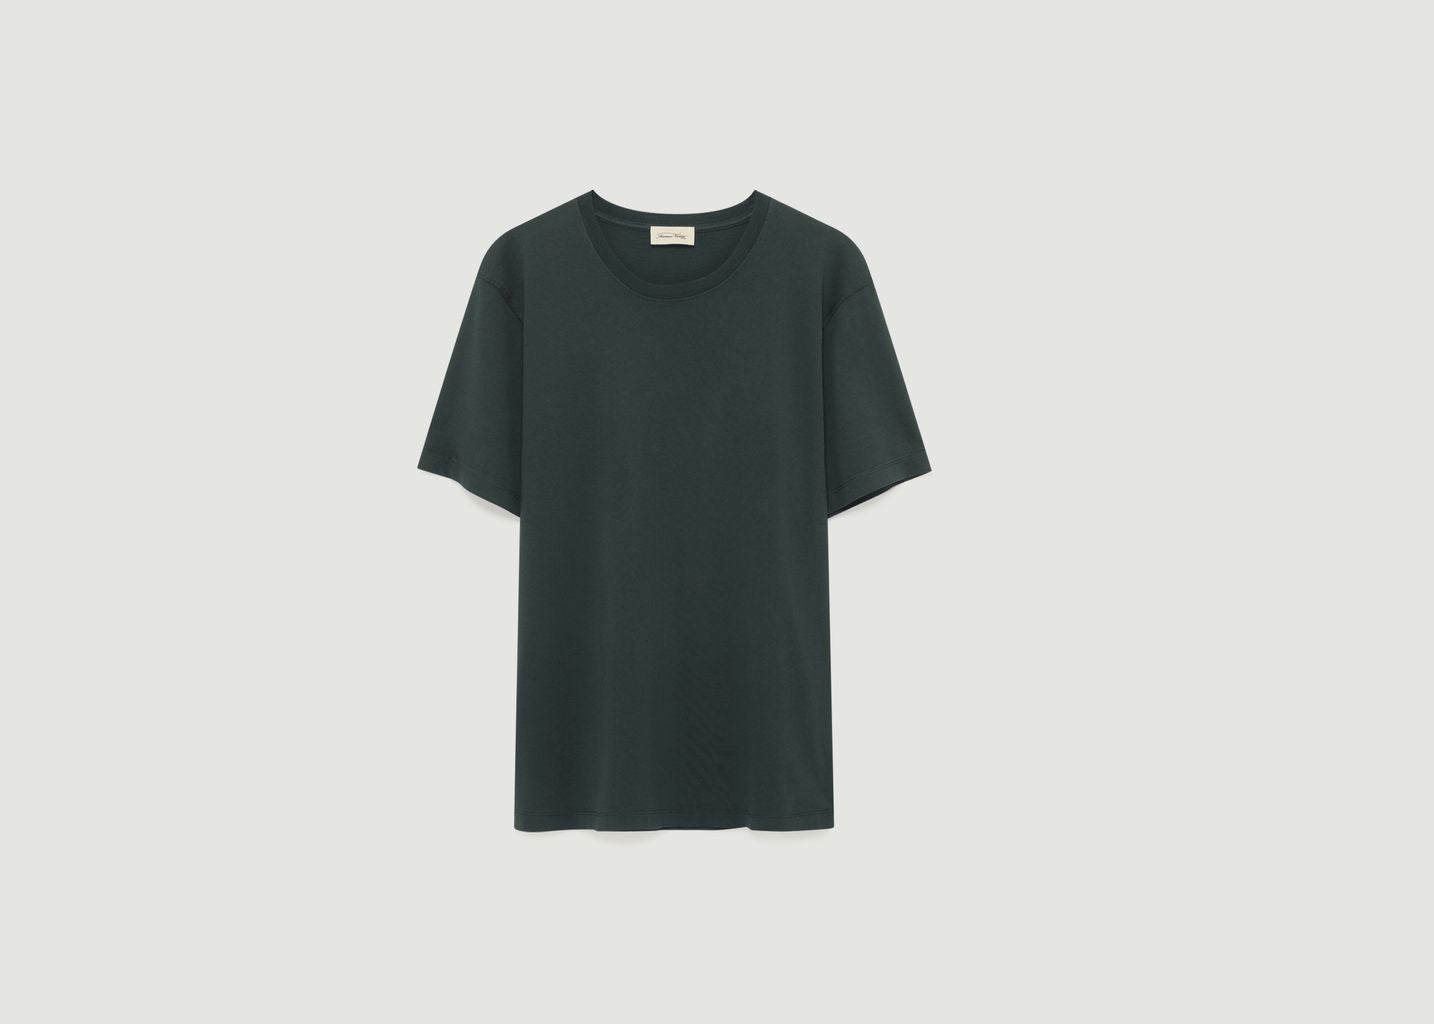 BASIC T SHIRT IN CHARCOAL